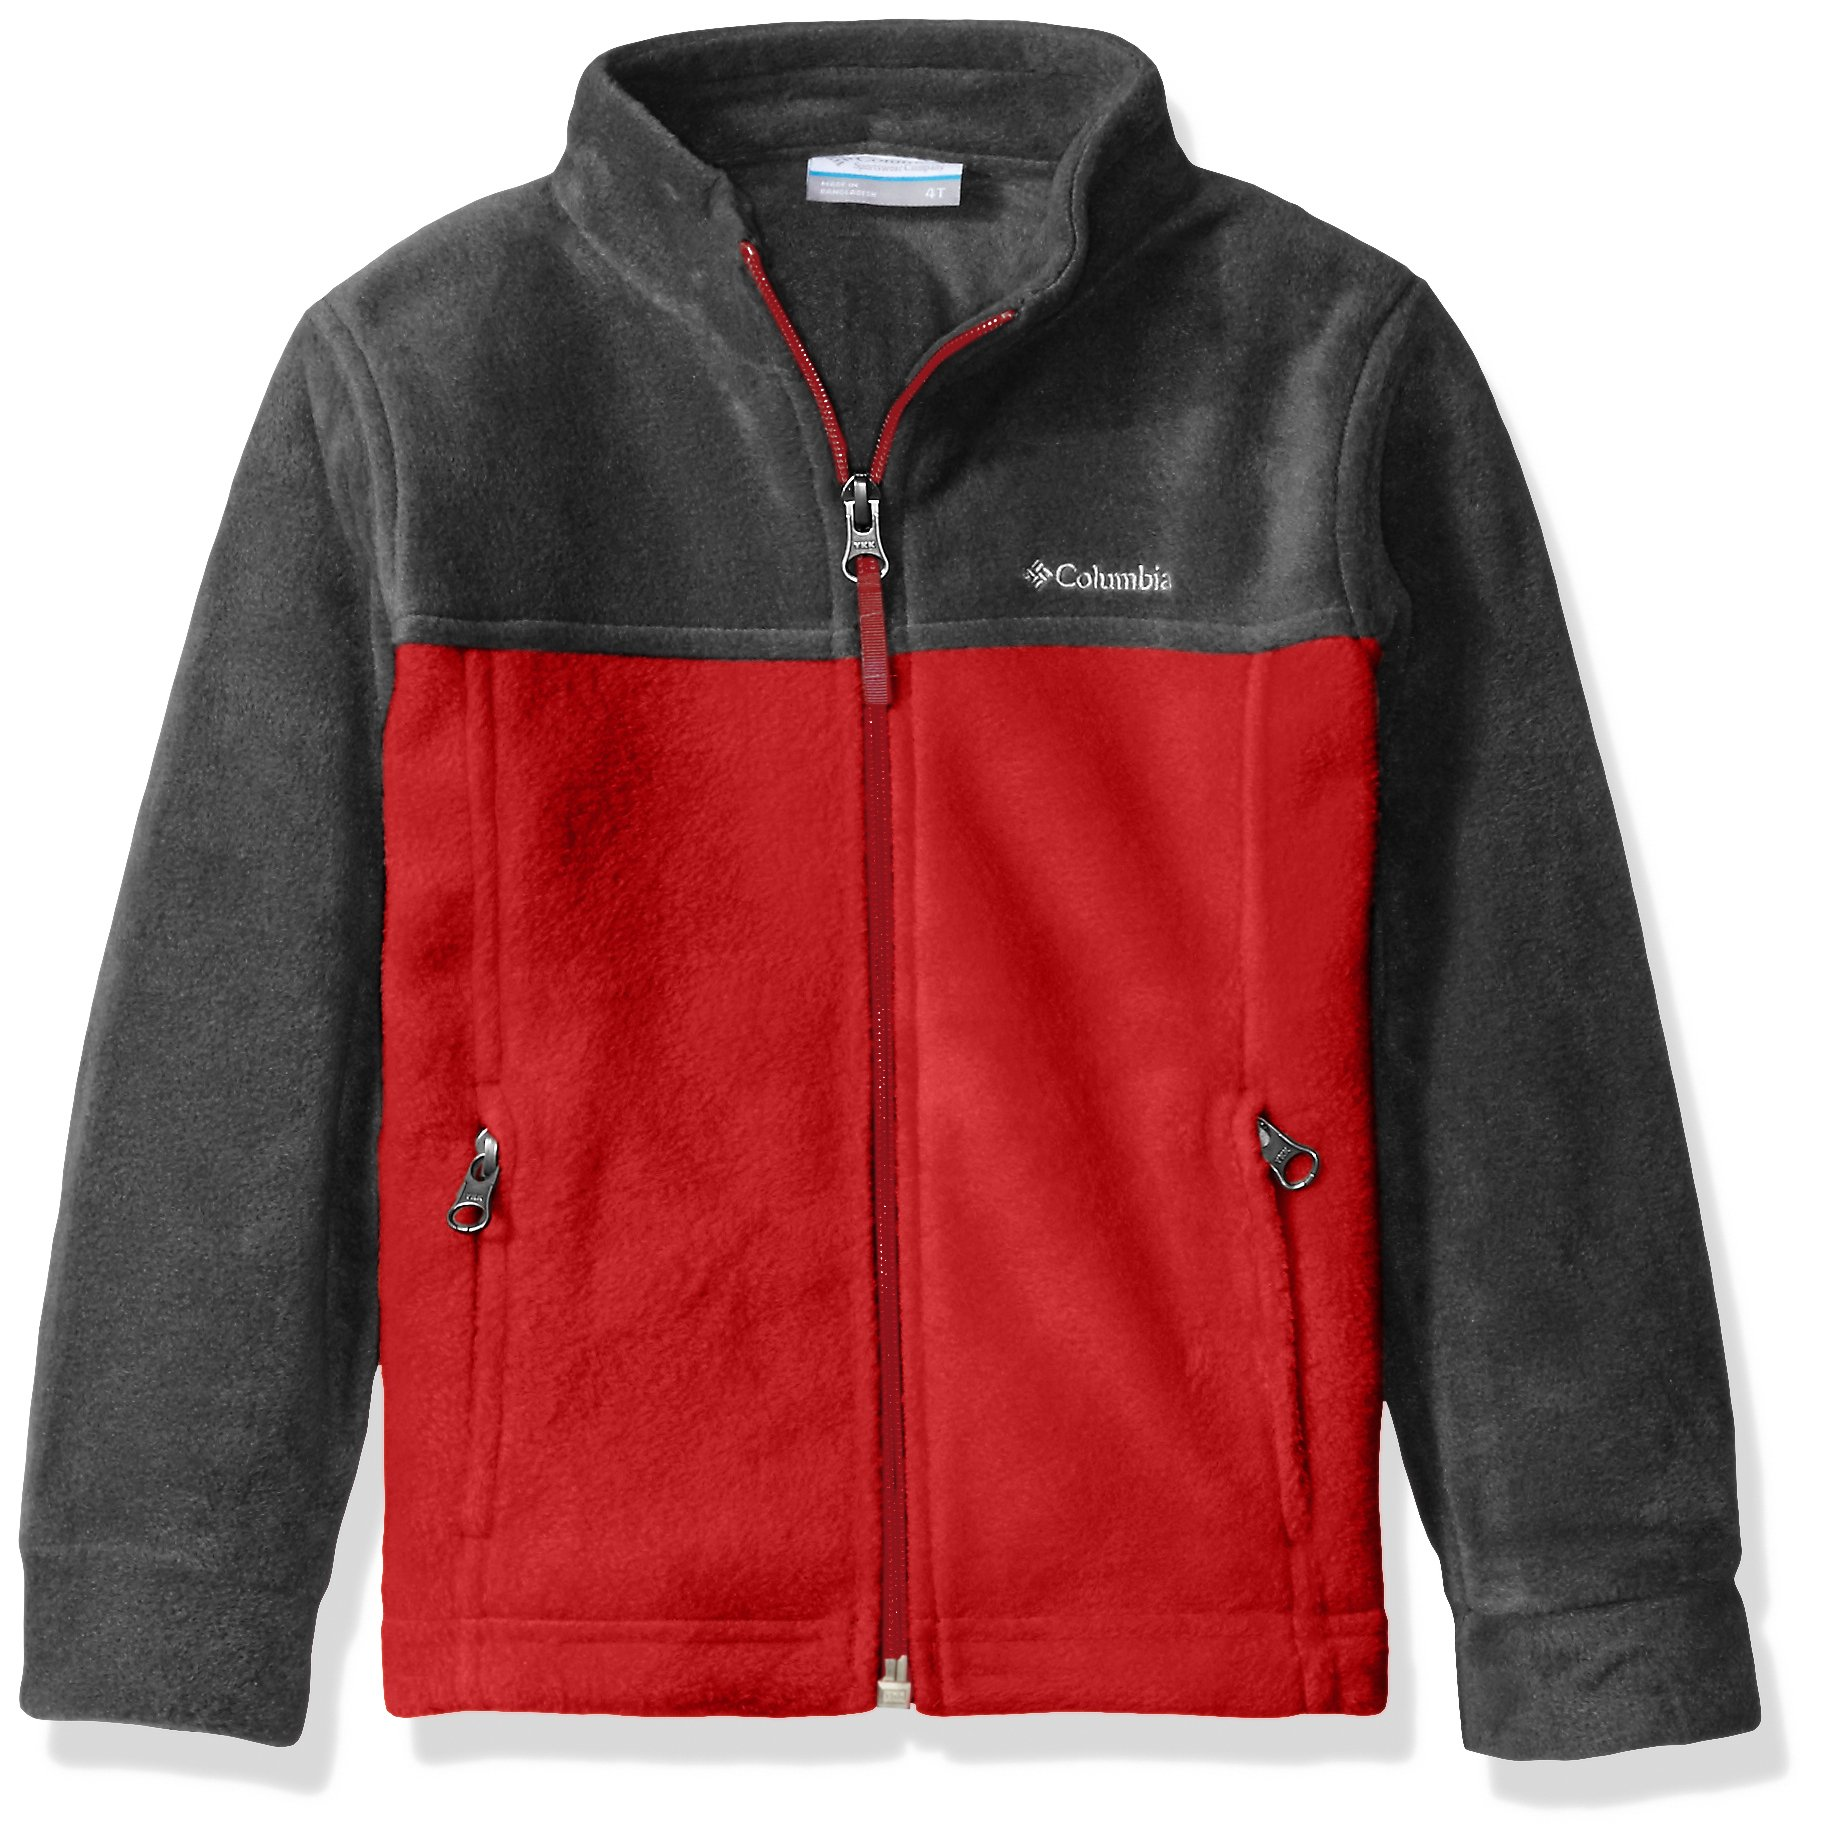 Columbia Little Boys' Toddler Steens MT II Fleece Jacket, Mountain Red/Charcoal Heather, 3T by Columbia